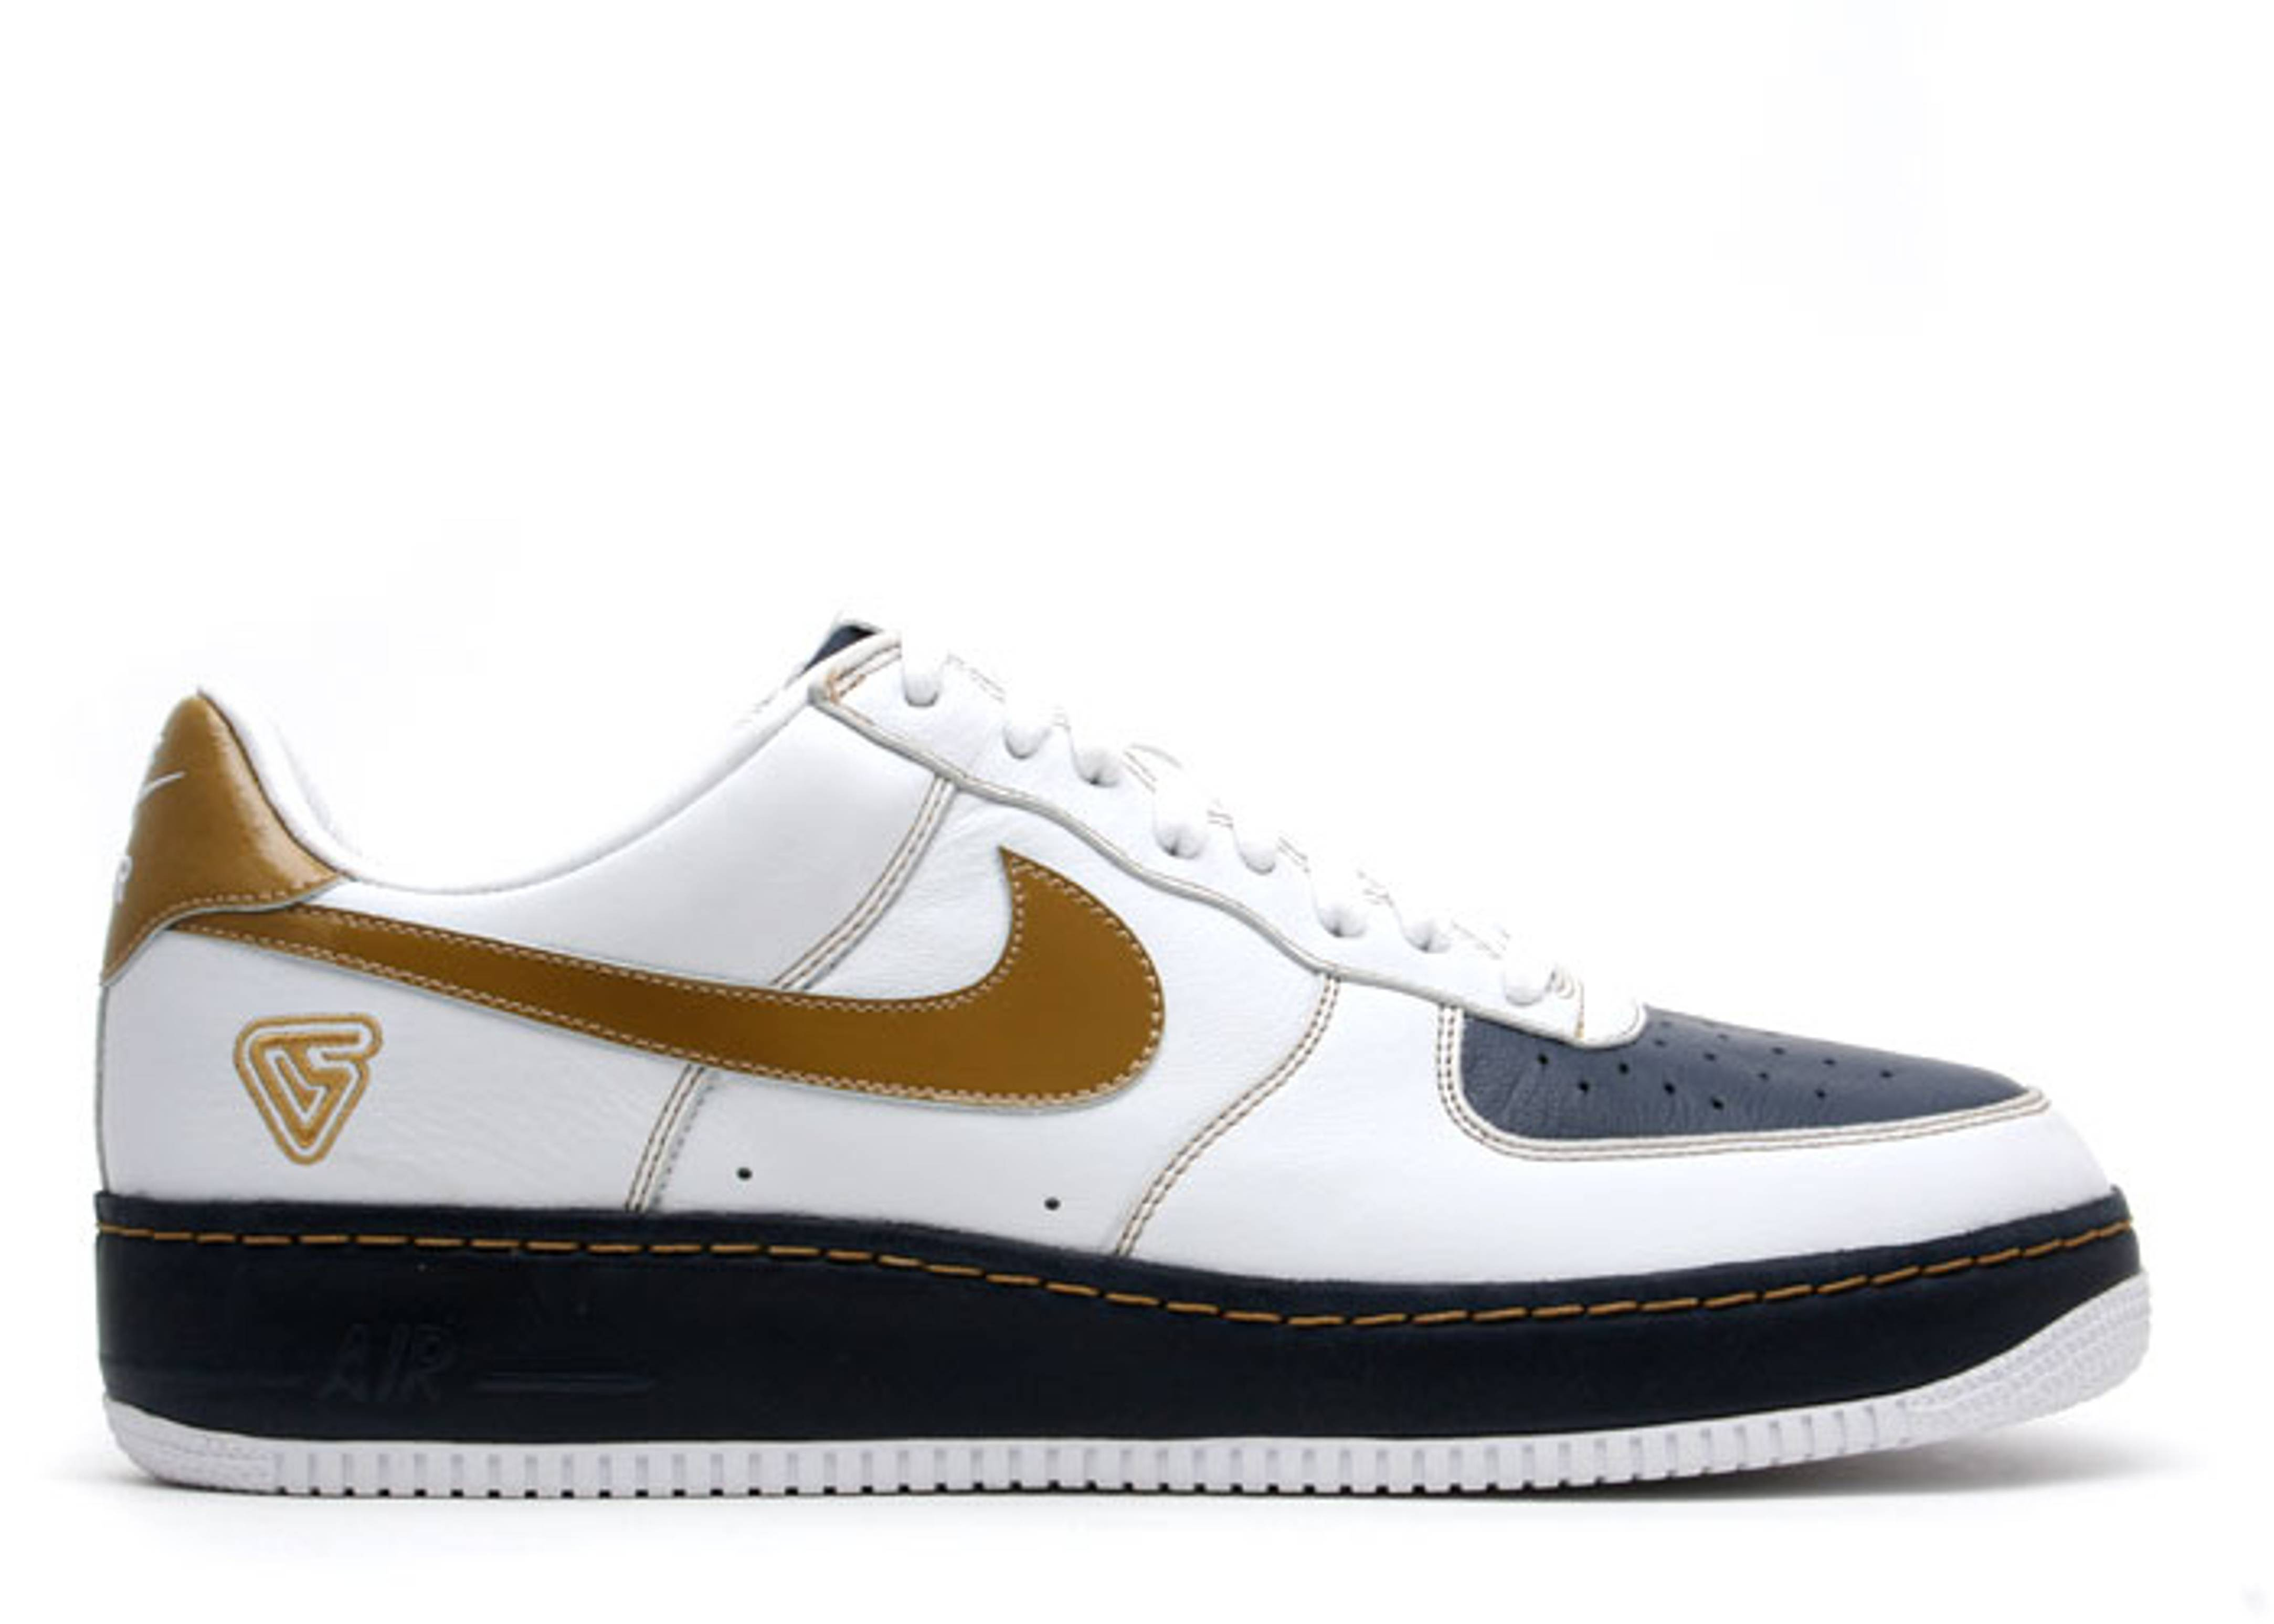 """air force 1 low premium """"vince carter player exclusive"""""""